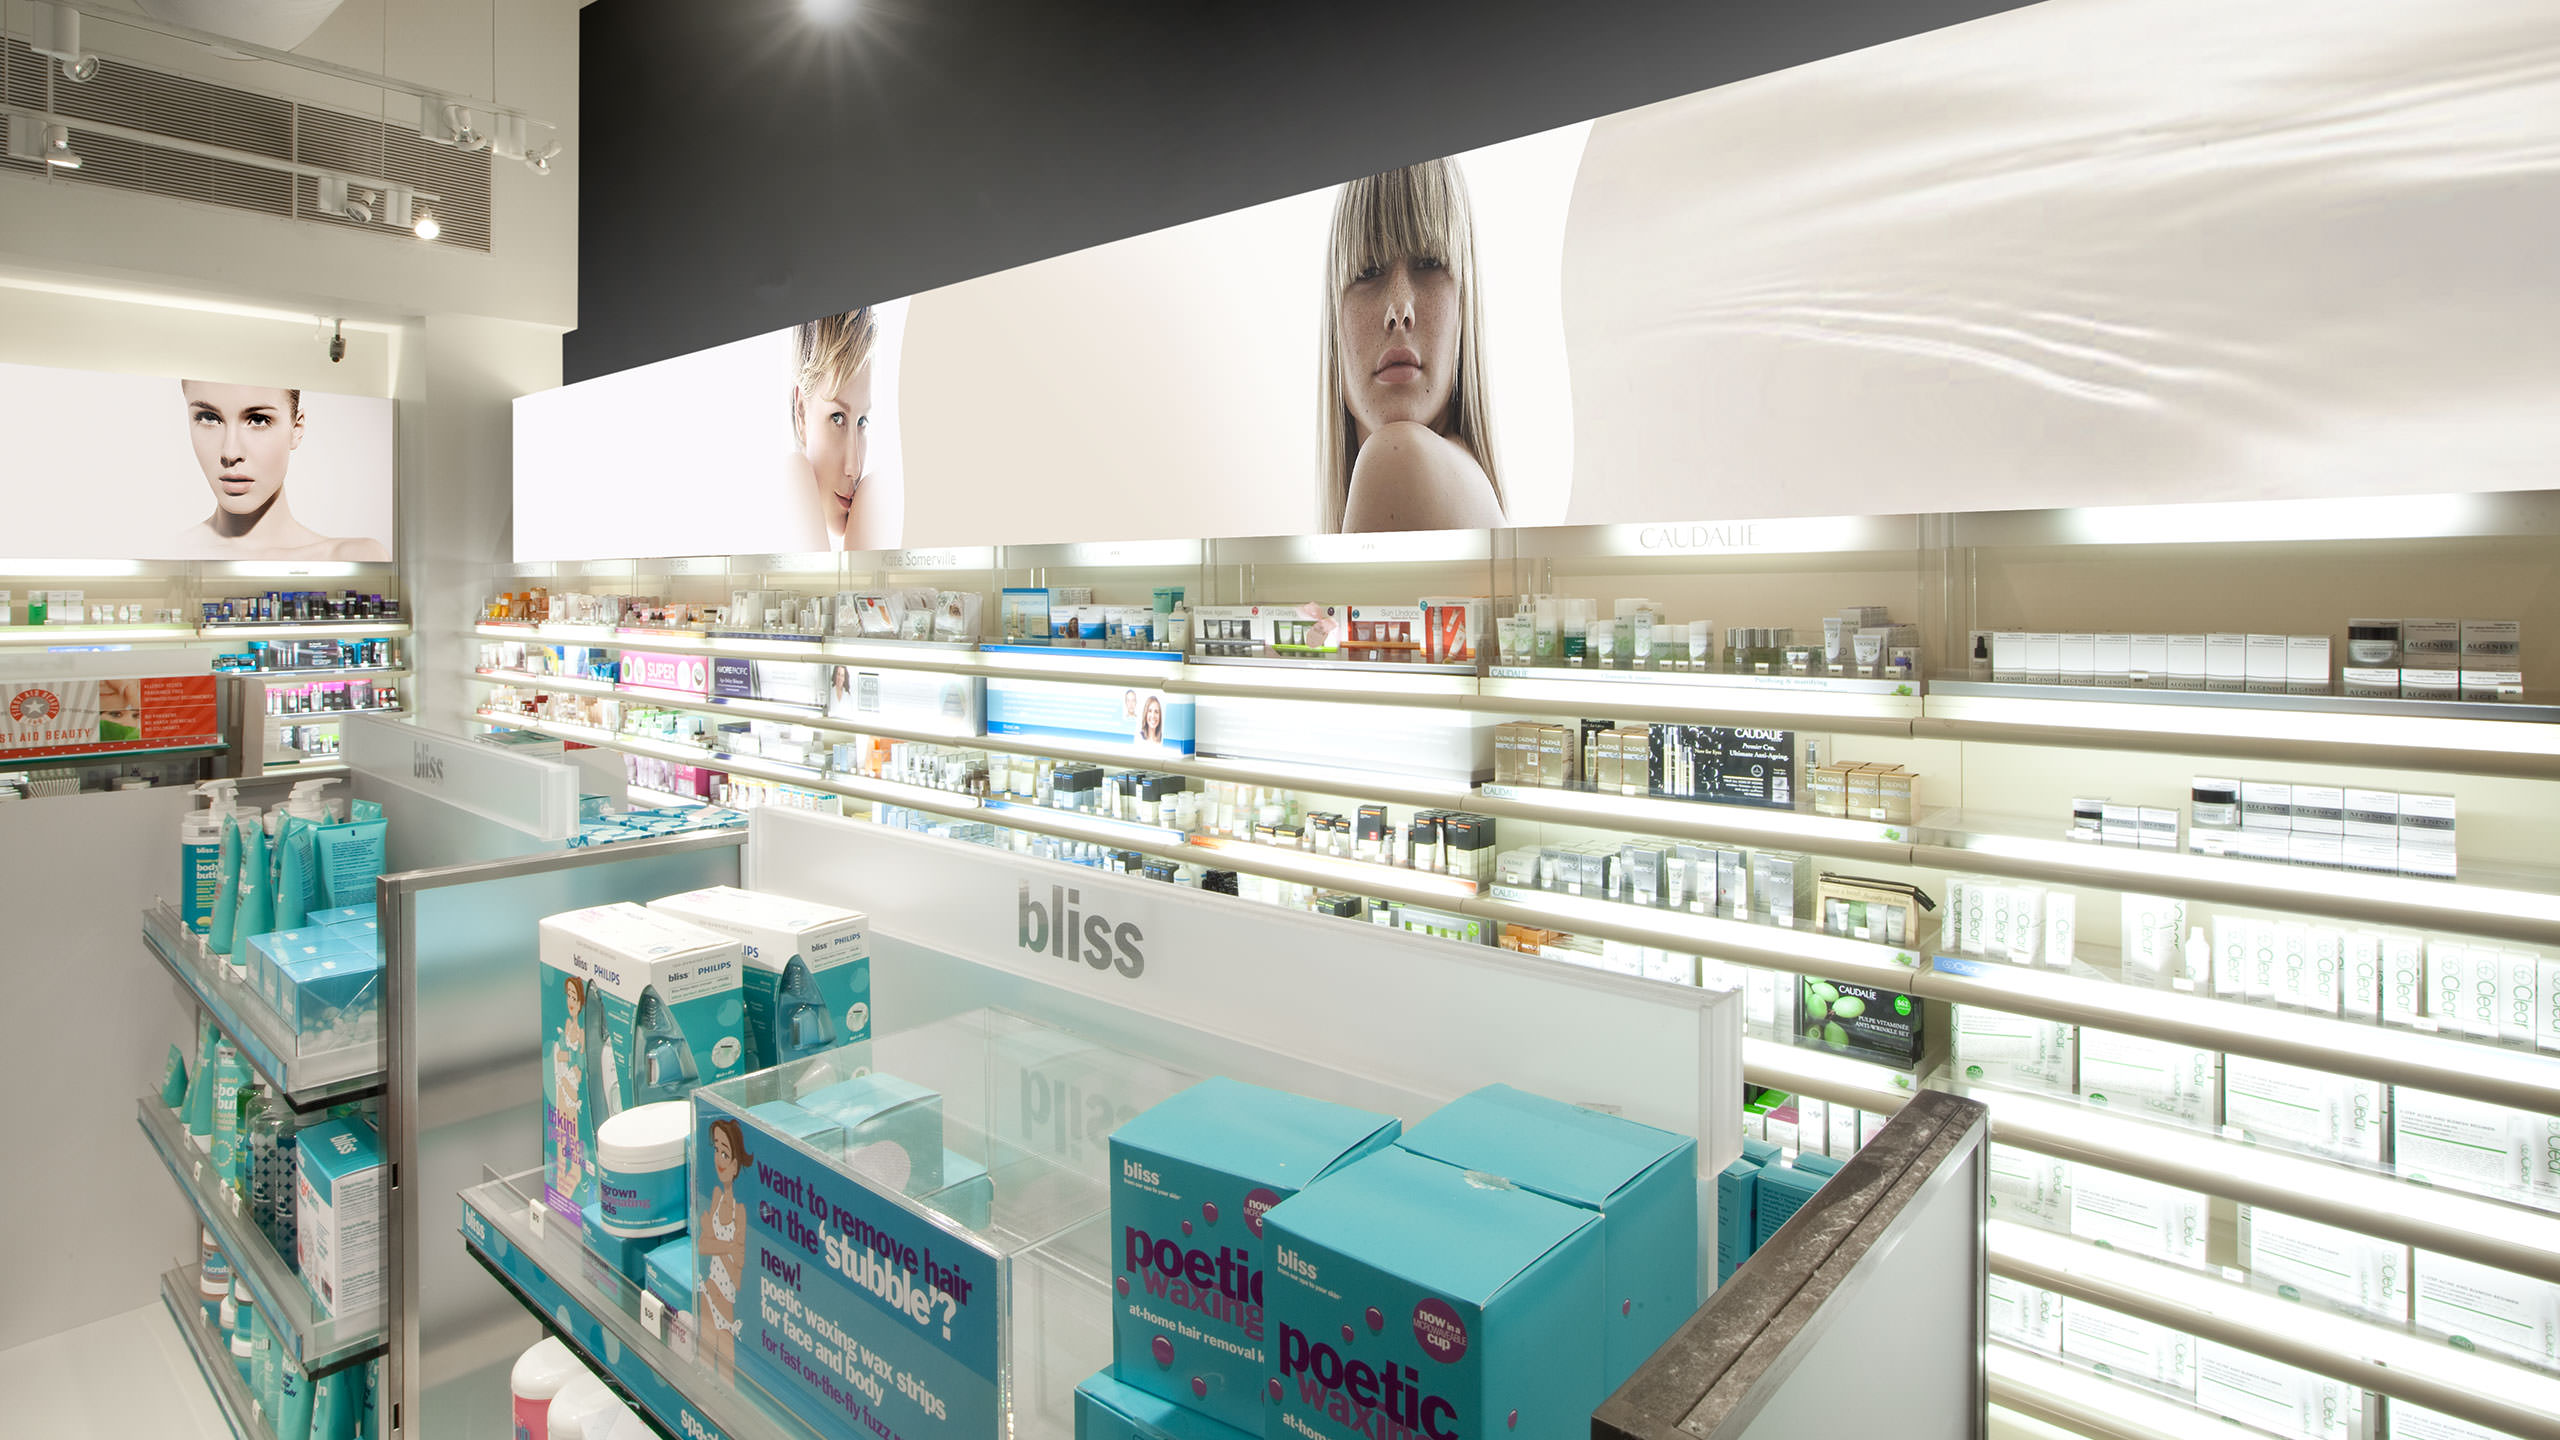 Sephora Retail Store - Interior space displaying skin care